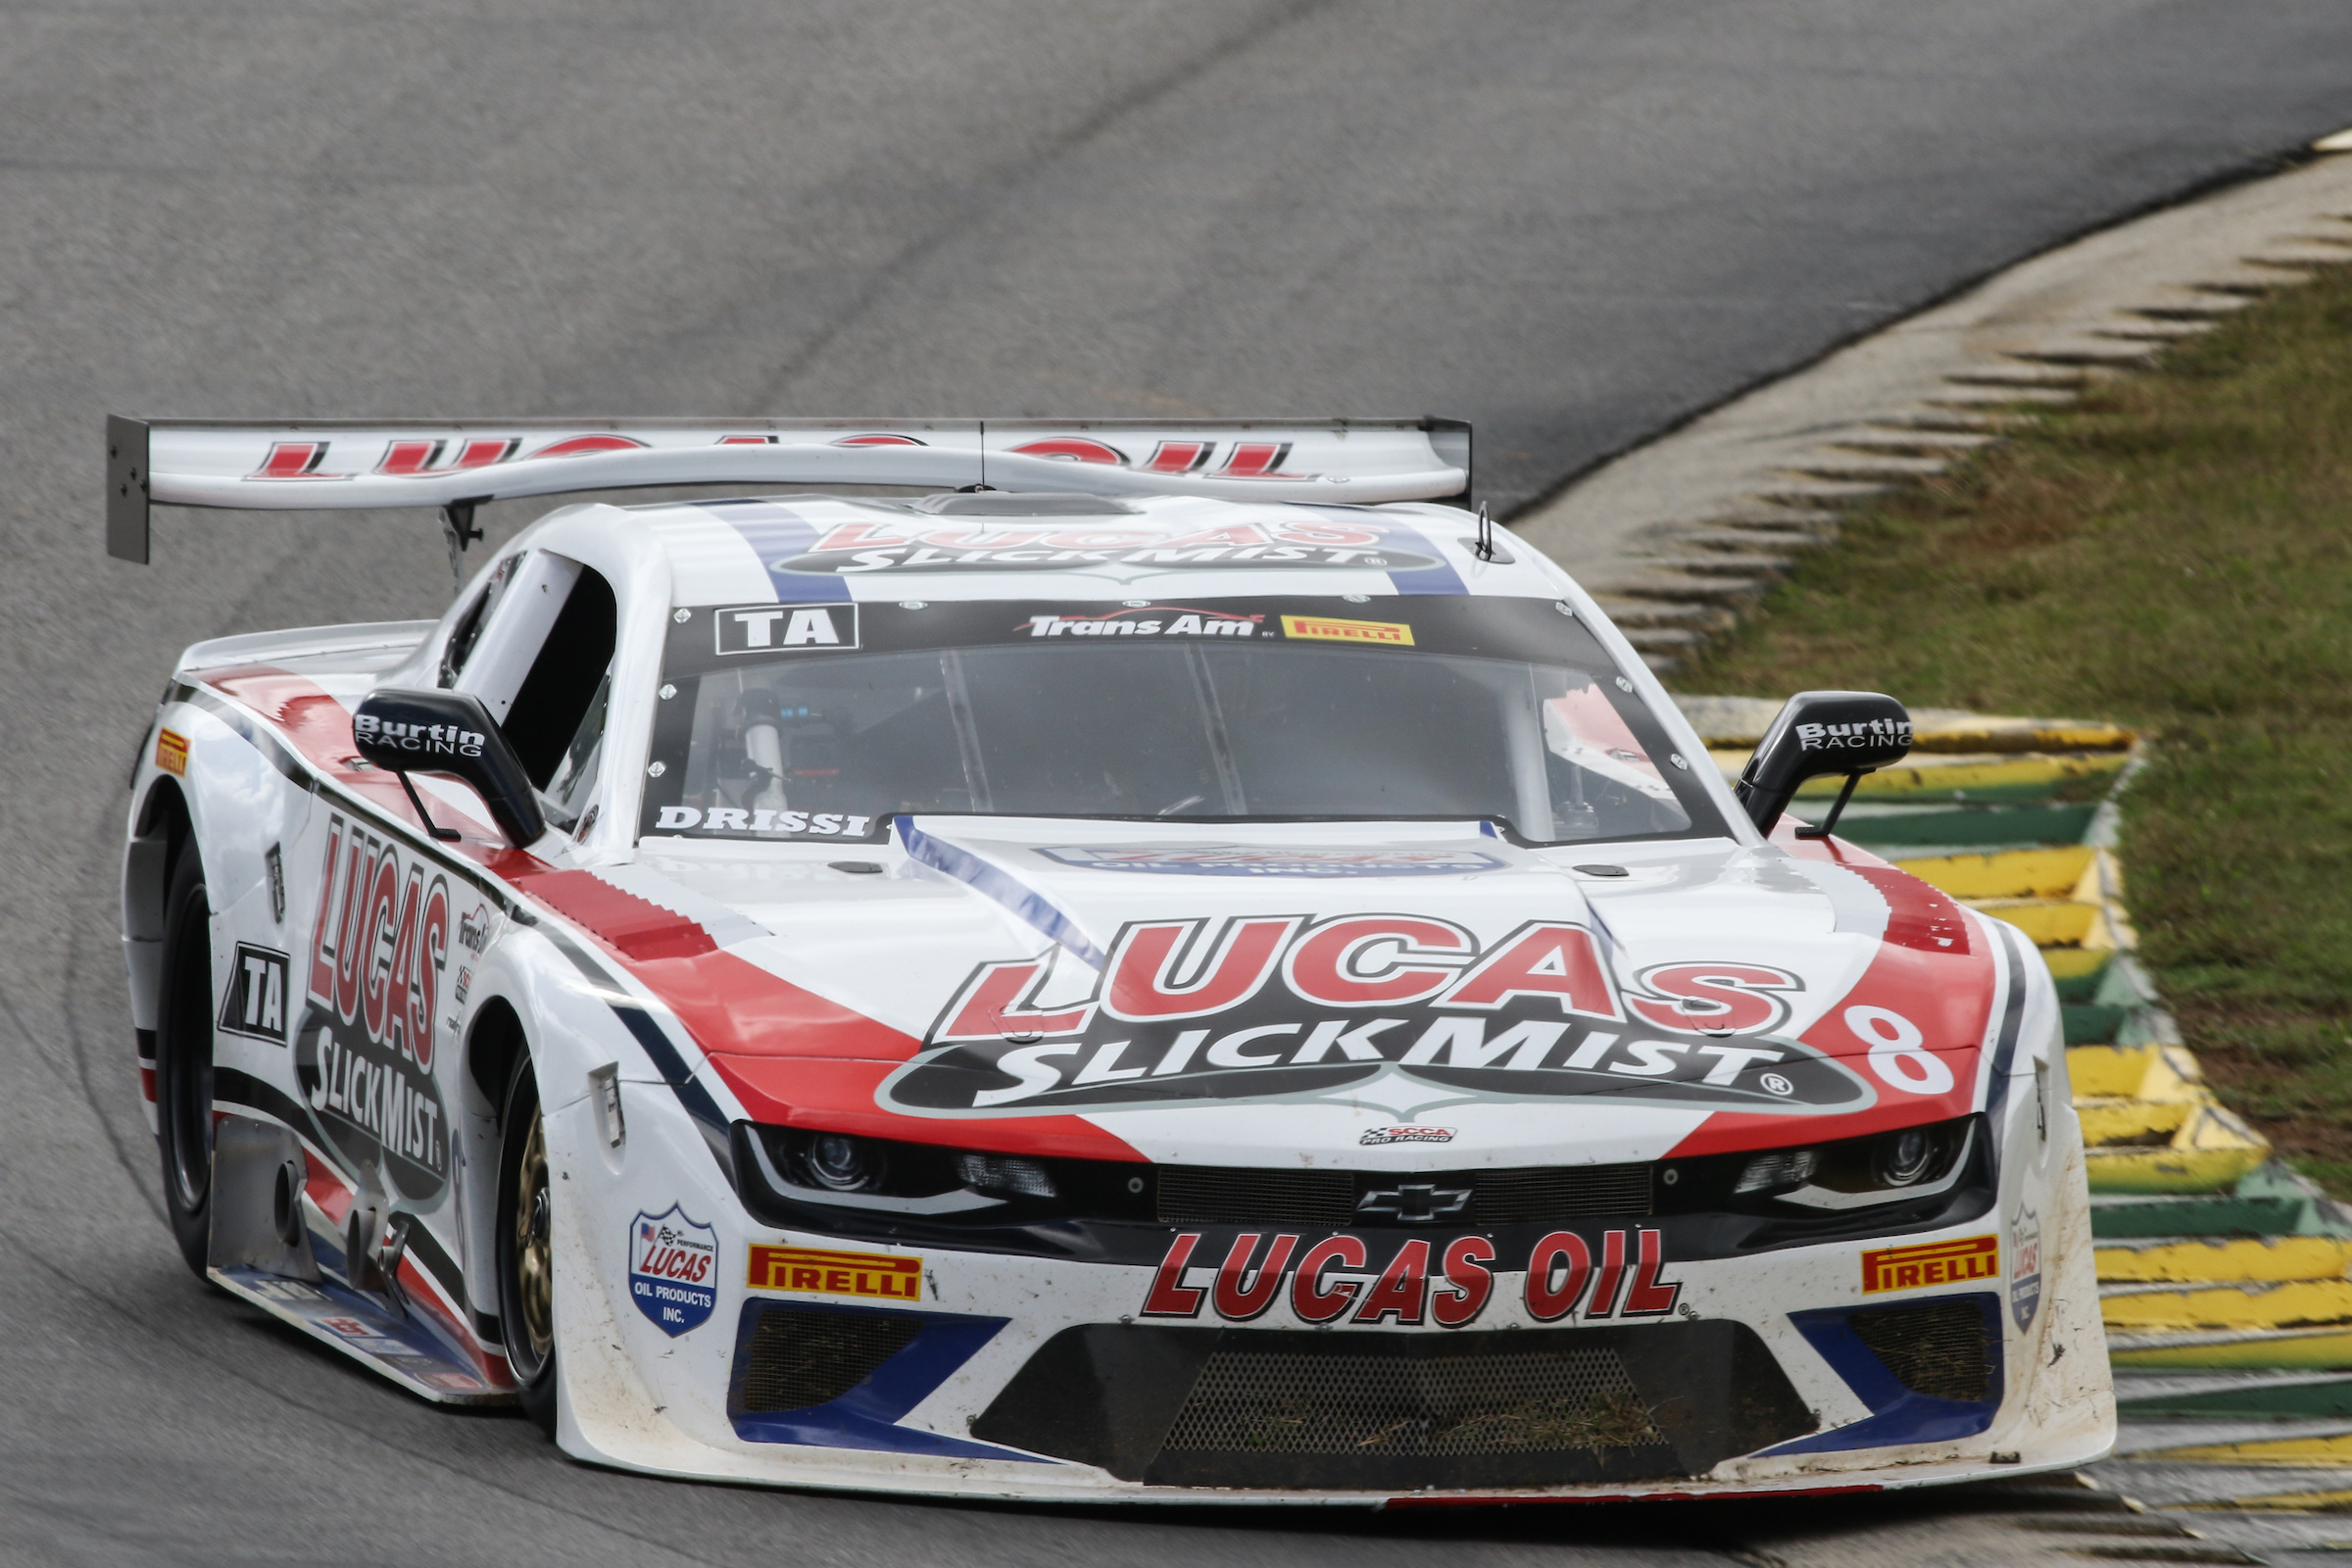 Lucas SlickMist Driver Tomy Drissi Finishes Watkins Glen Double Header With Ups and Downs